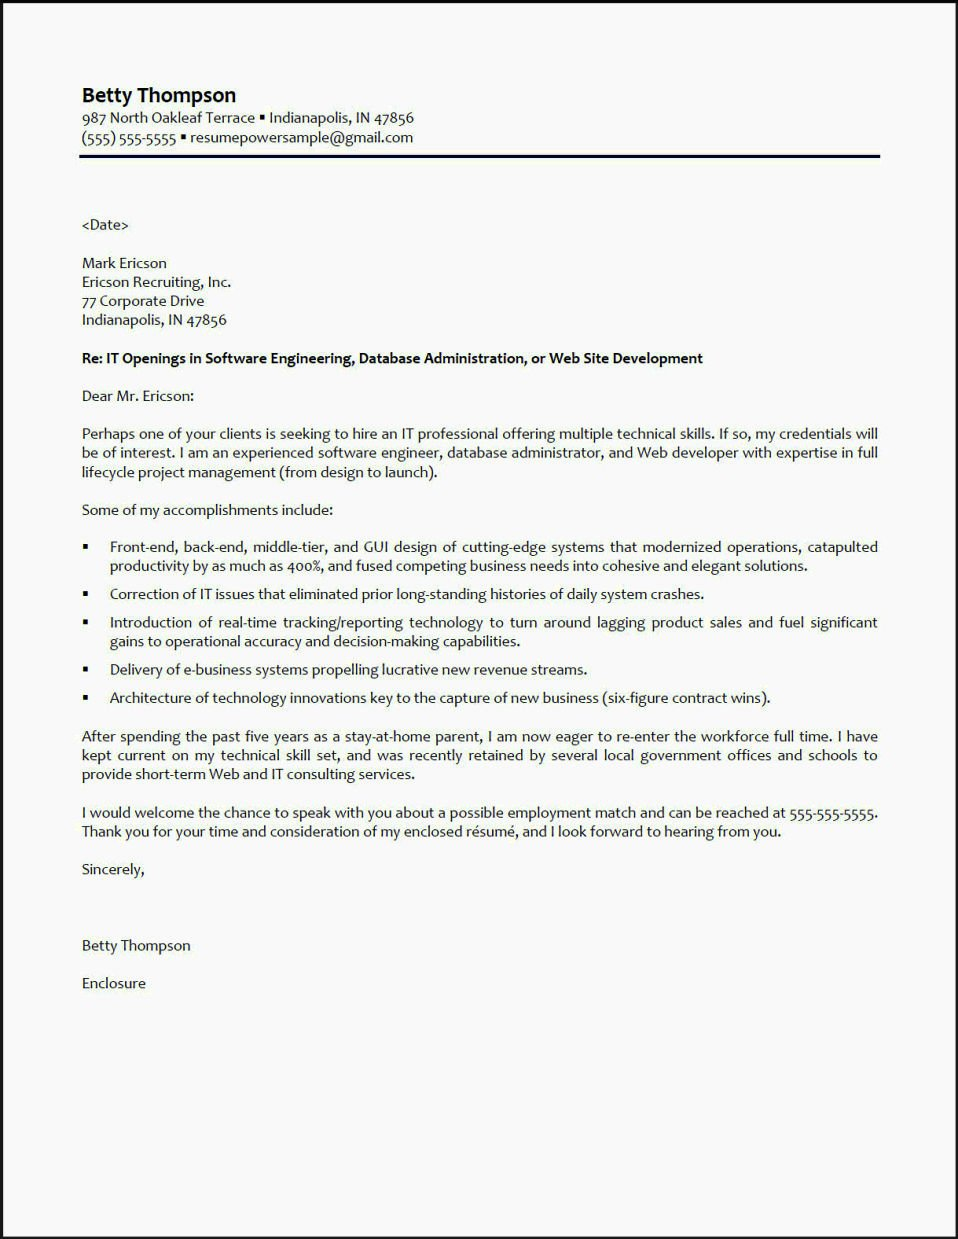 Cover Letter for Getting Back Into Workforce